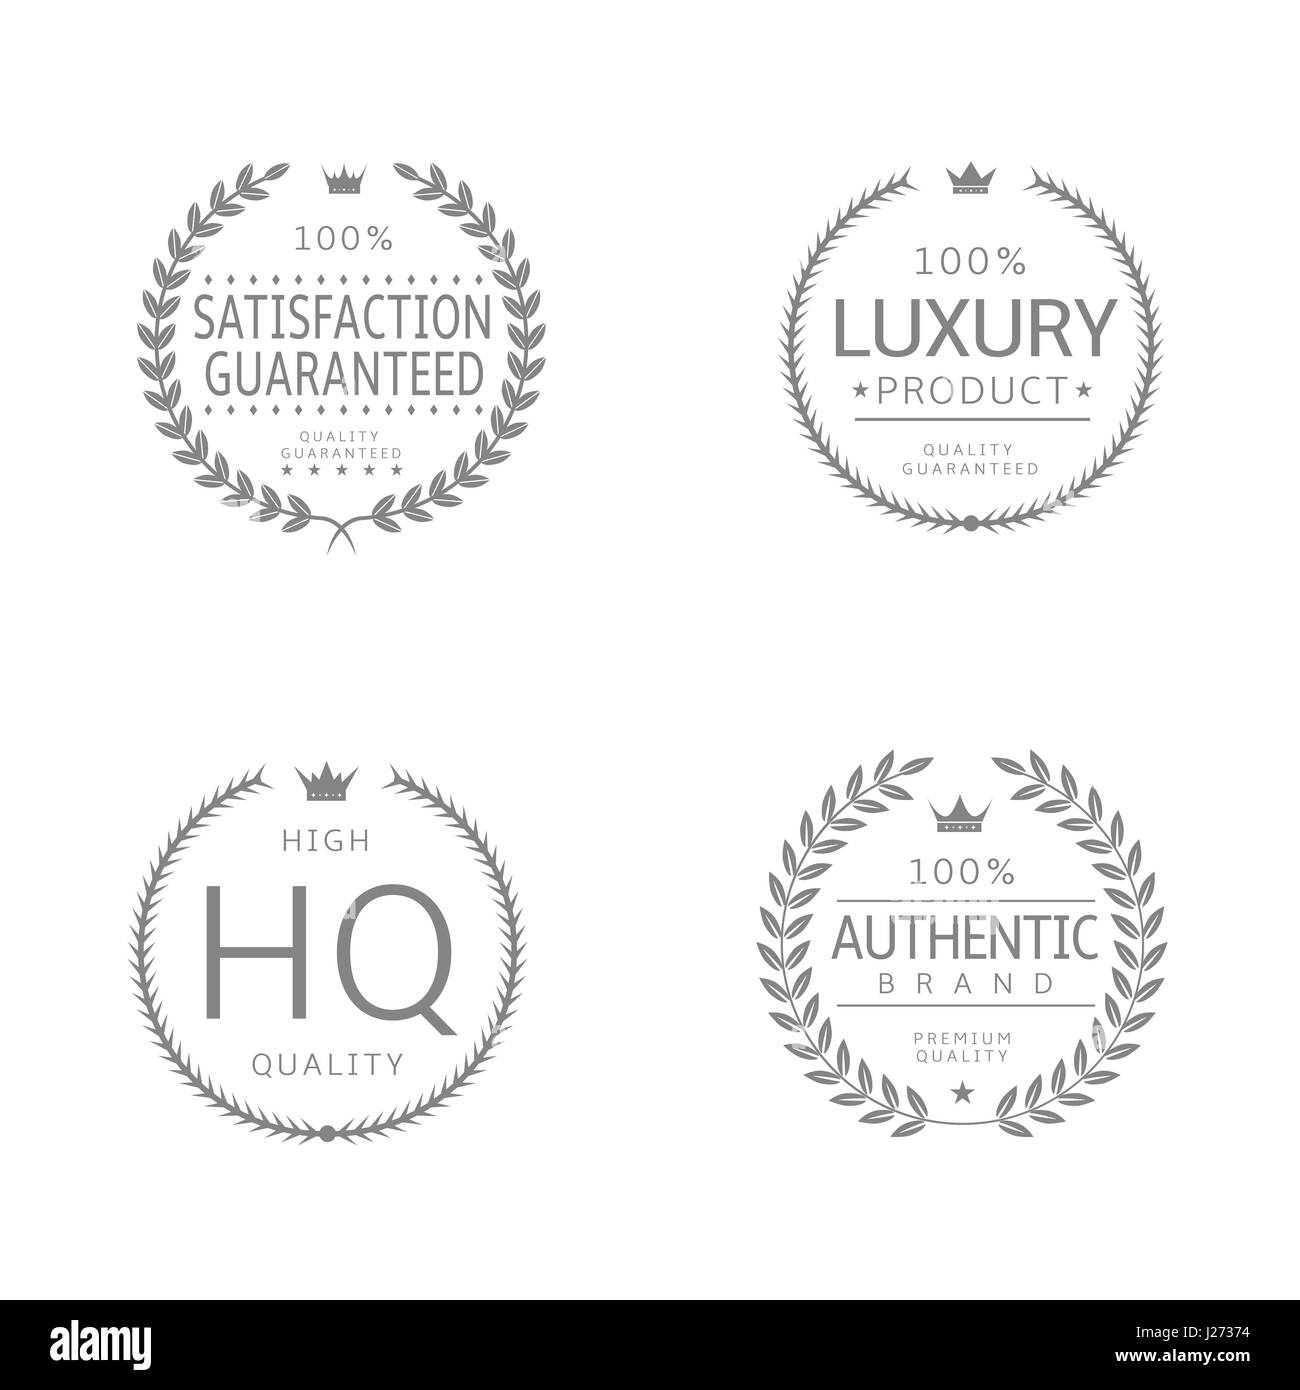 Laurel wreath icons - Stock Image